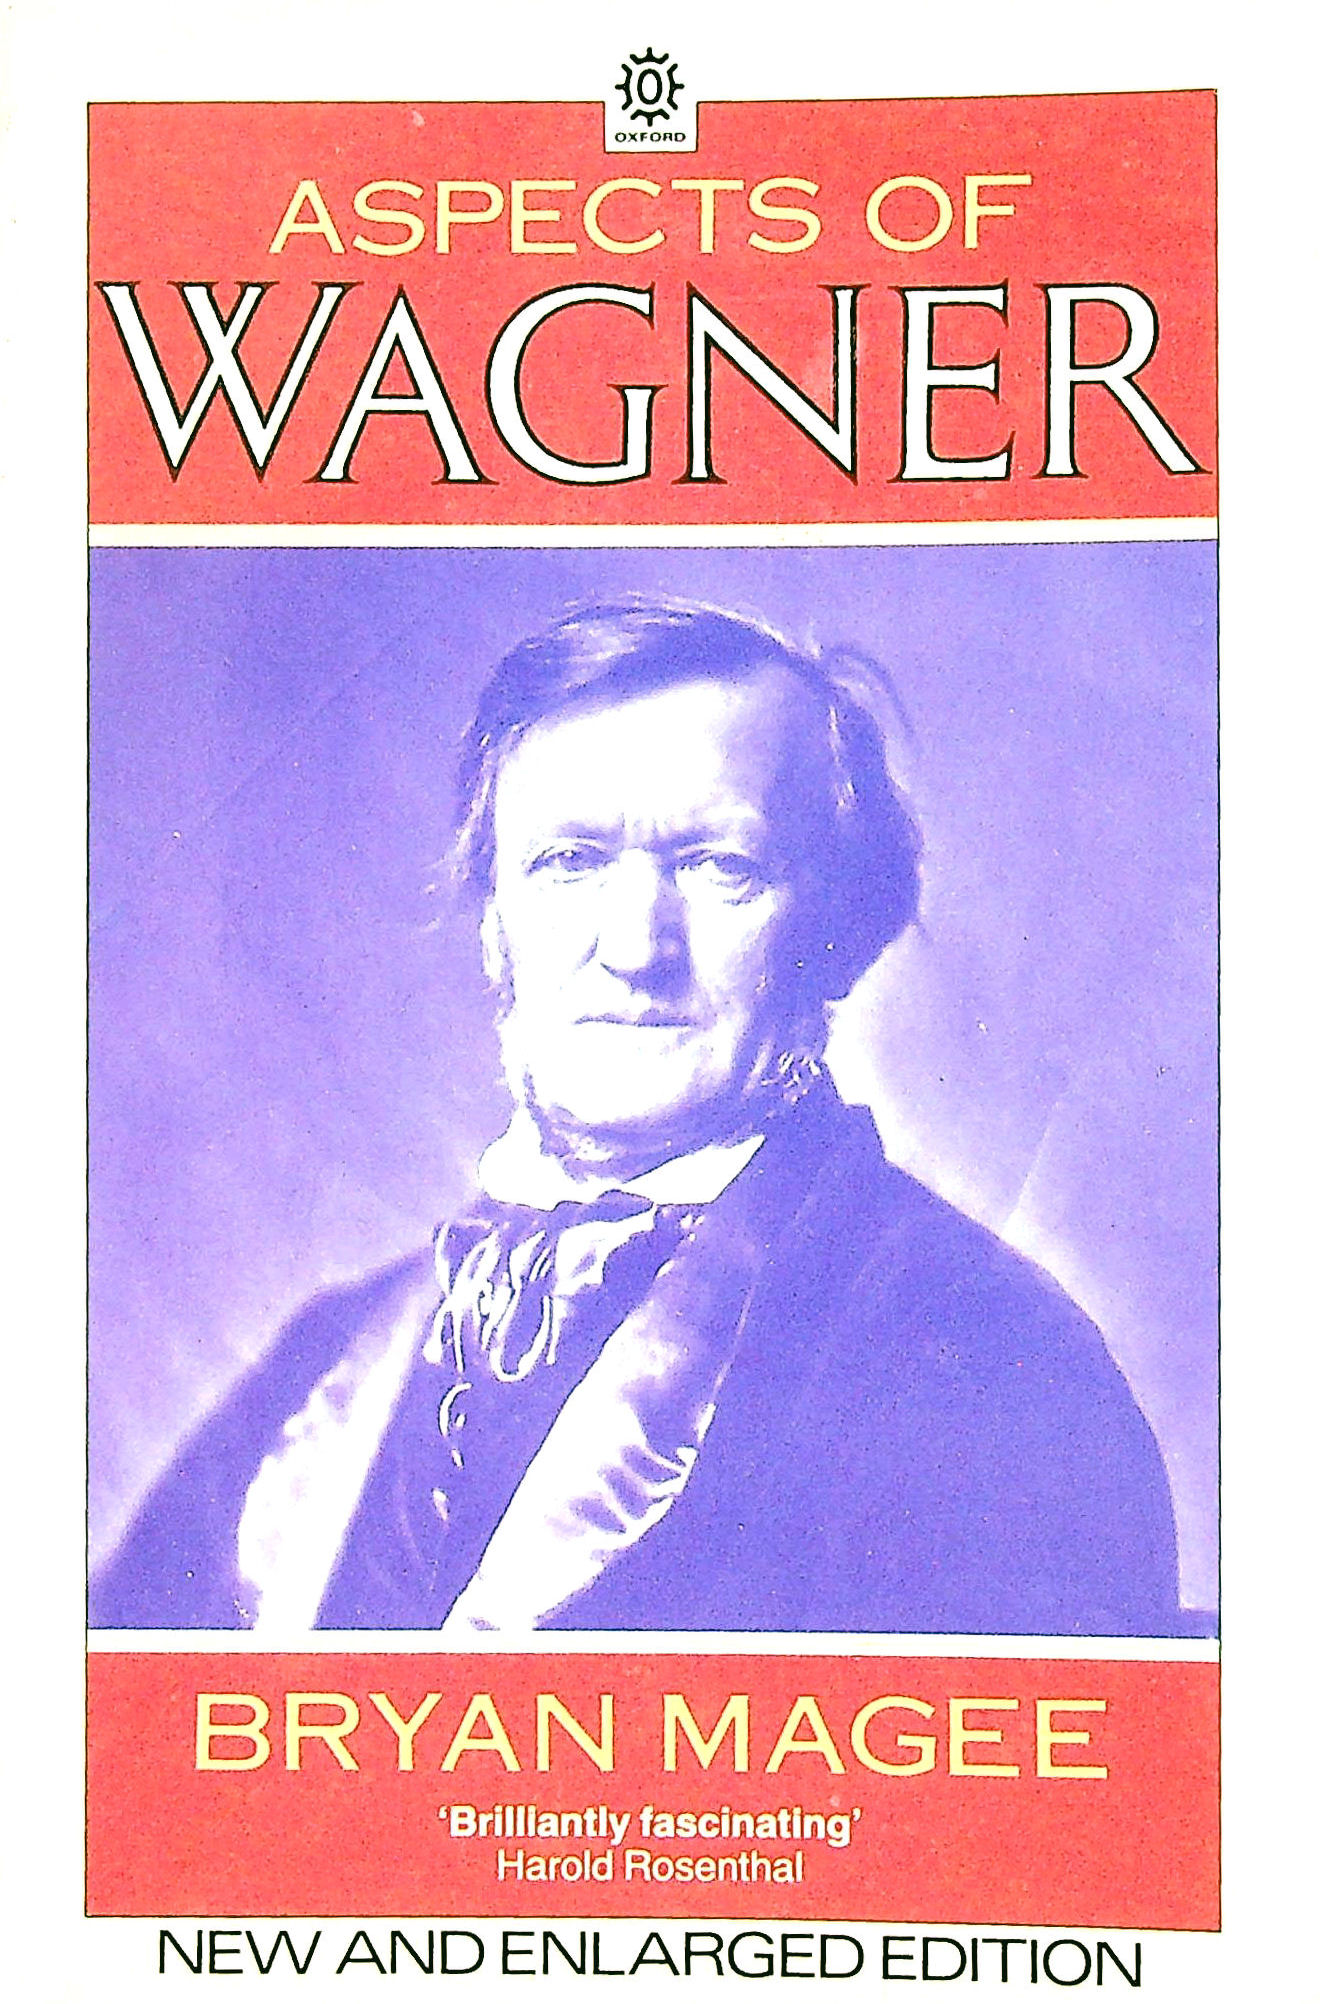 Image for Aspects Of Wagner, Second Edition, Revised And Enlarged (Oxford Paperbacks)